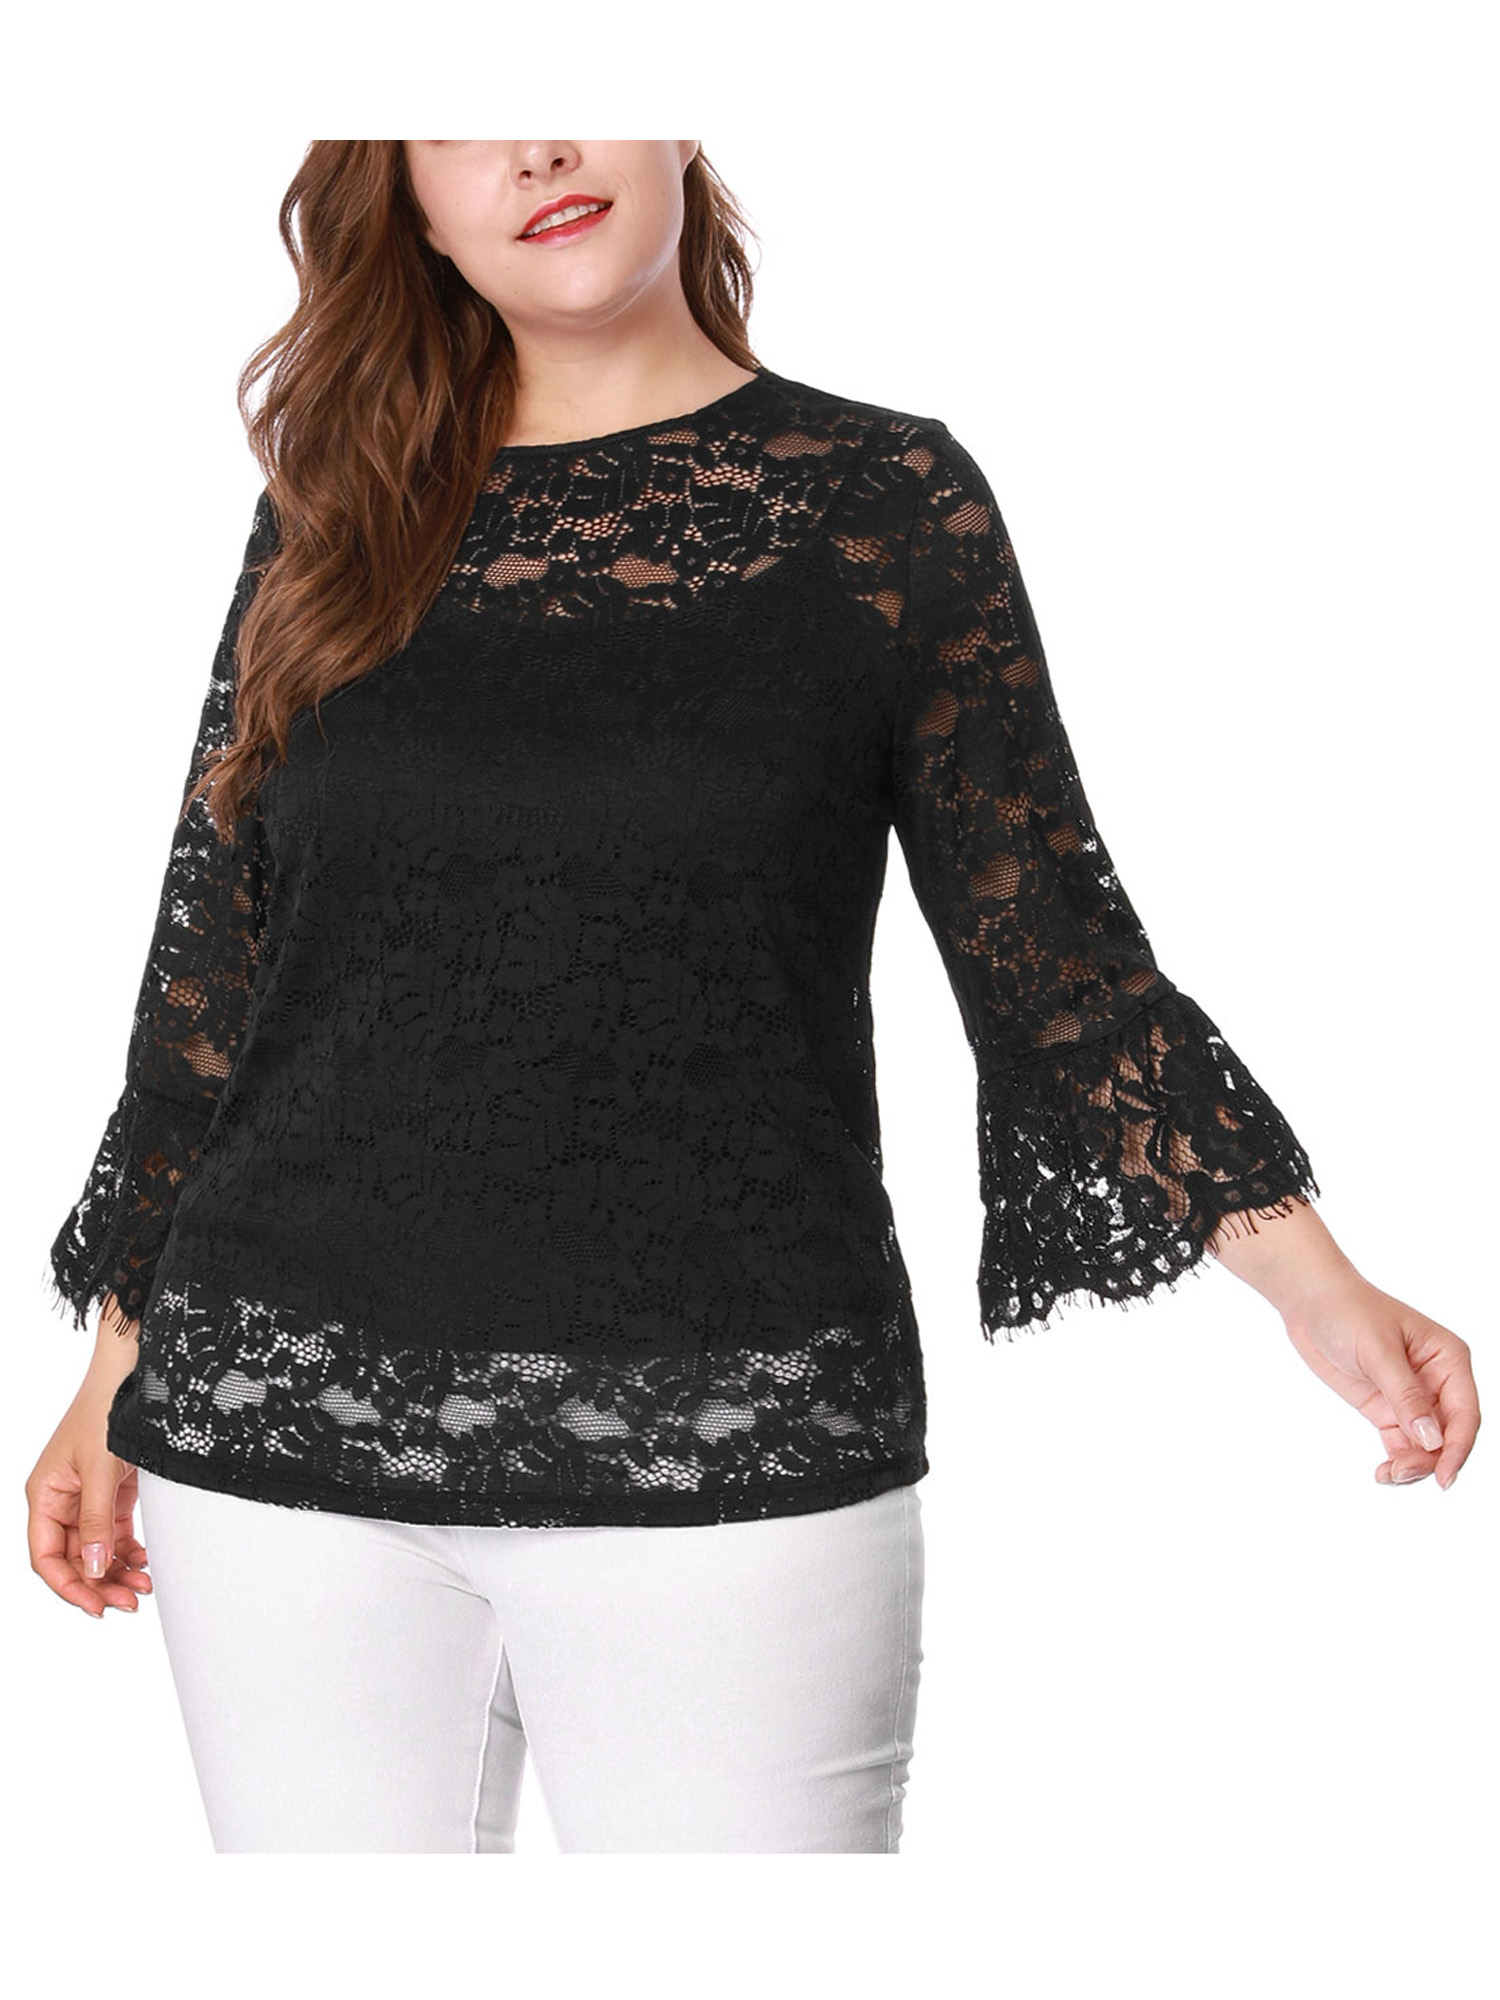 Woman/'s Black Short Sleeve Shirt 2X Top by Salon Studio Plus Size